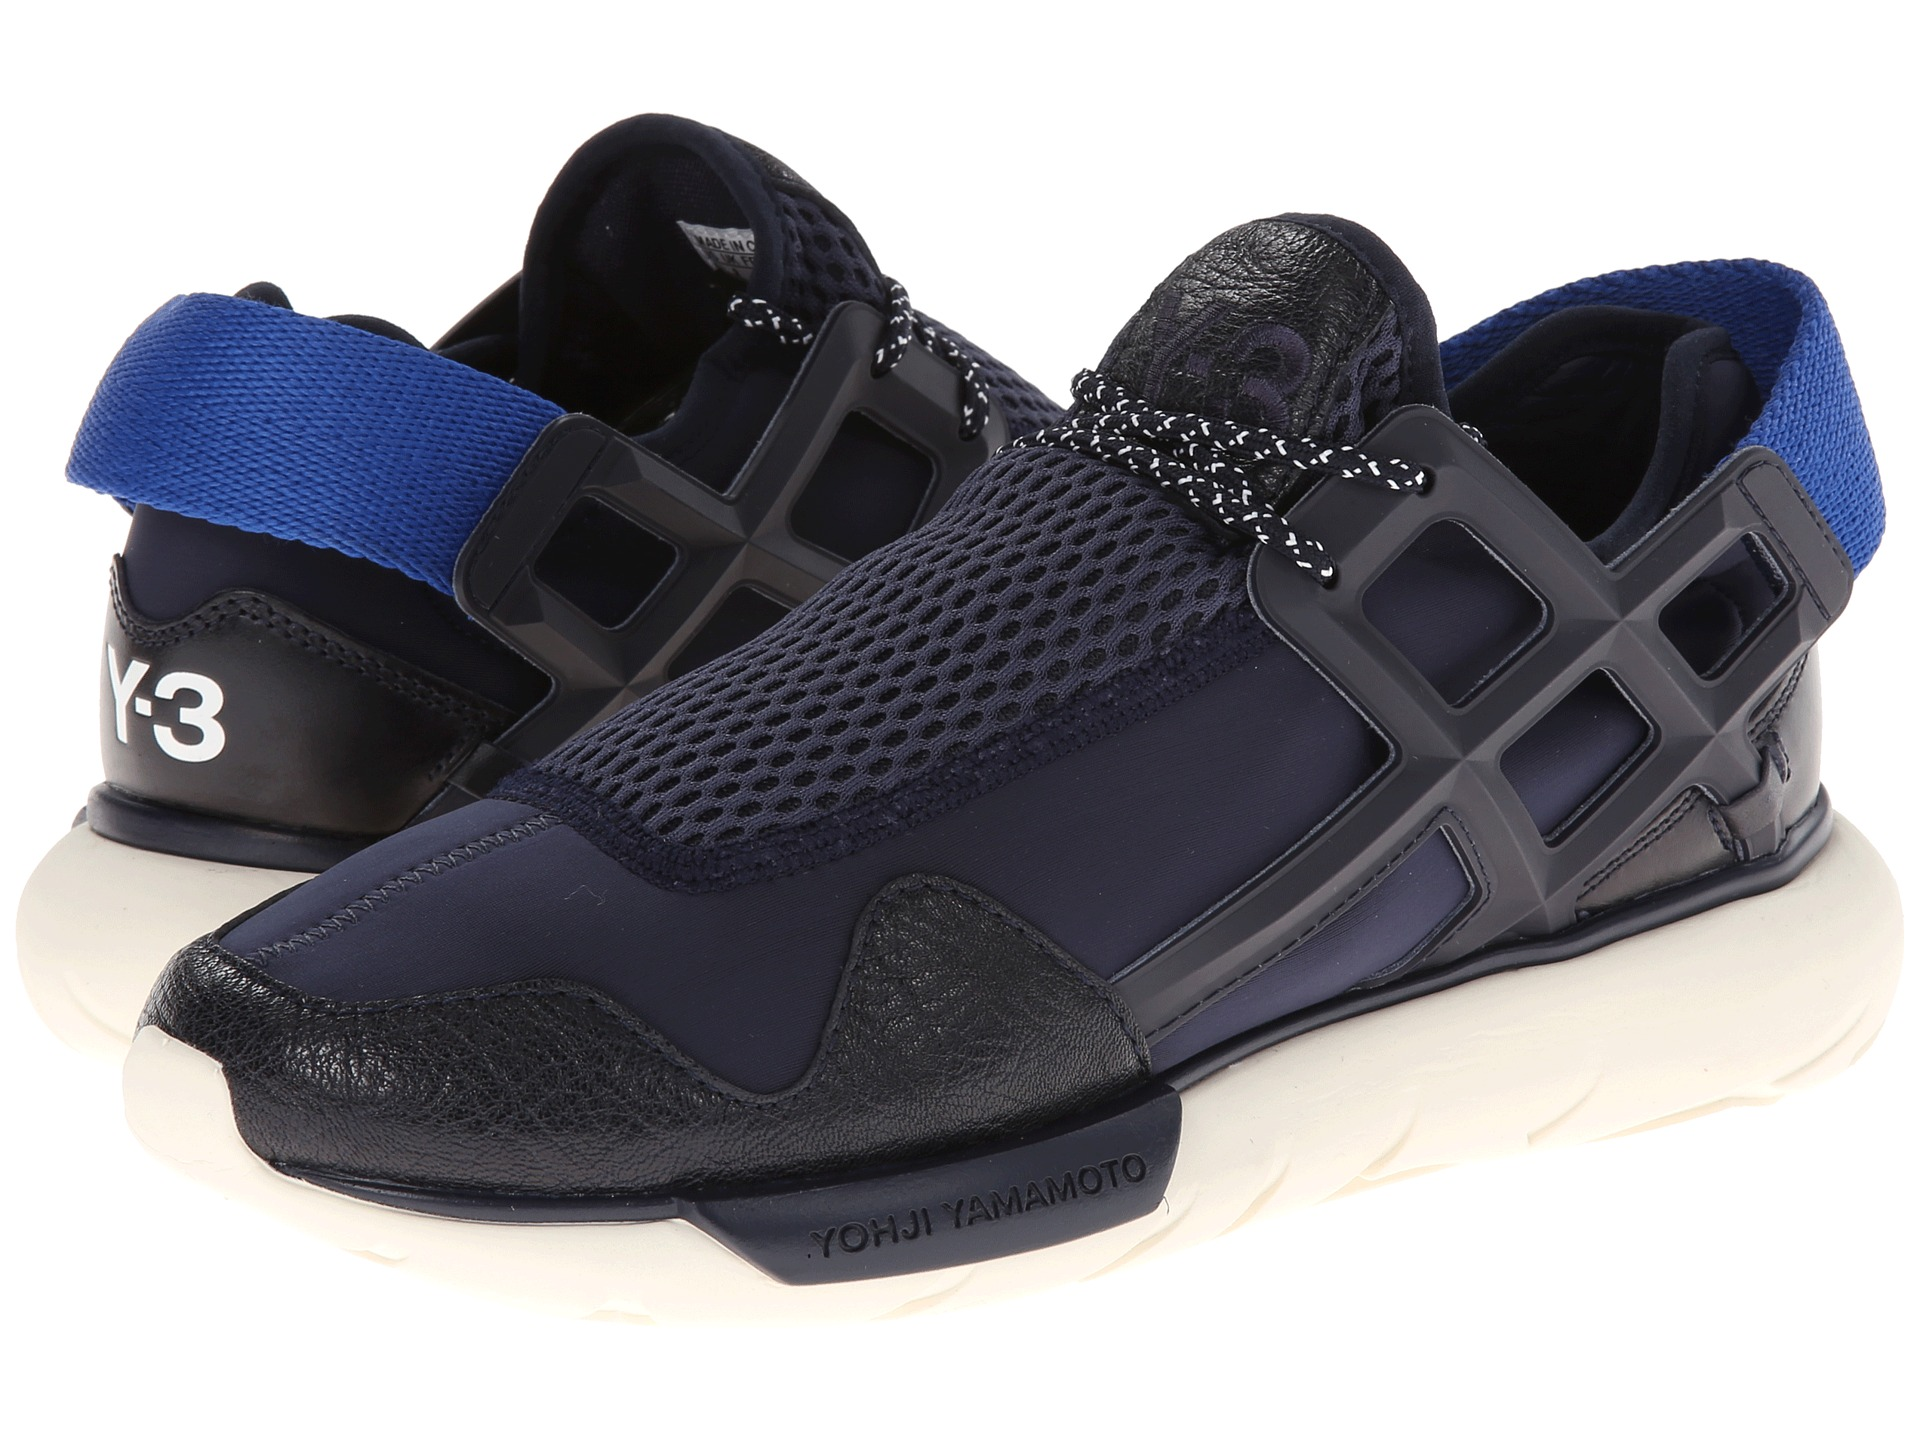 adidas y 3 by yohji yamamoto y 3 qasa racer shipped free. Black Bedroom Furniture Sets. Home Design Ideas